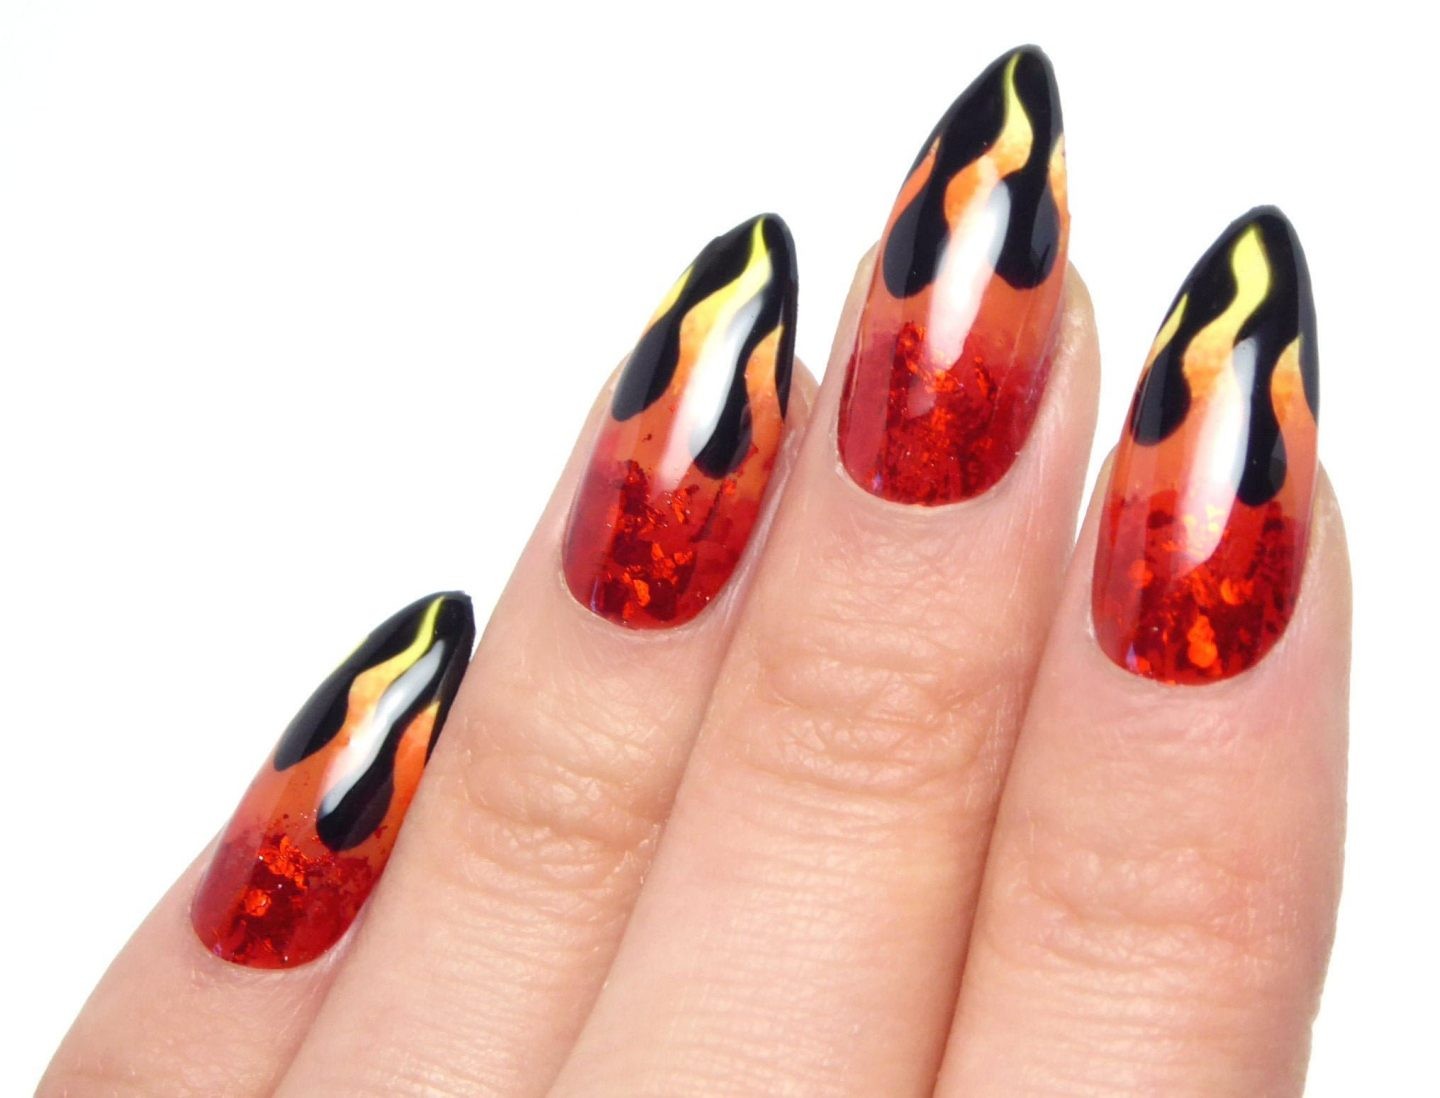 Holographic black and red flaming fire nails